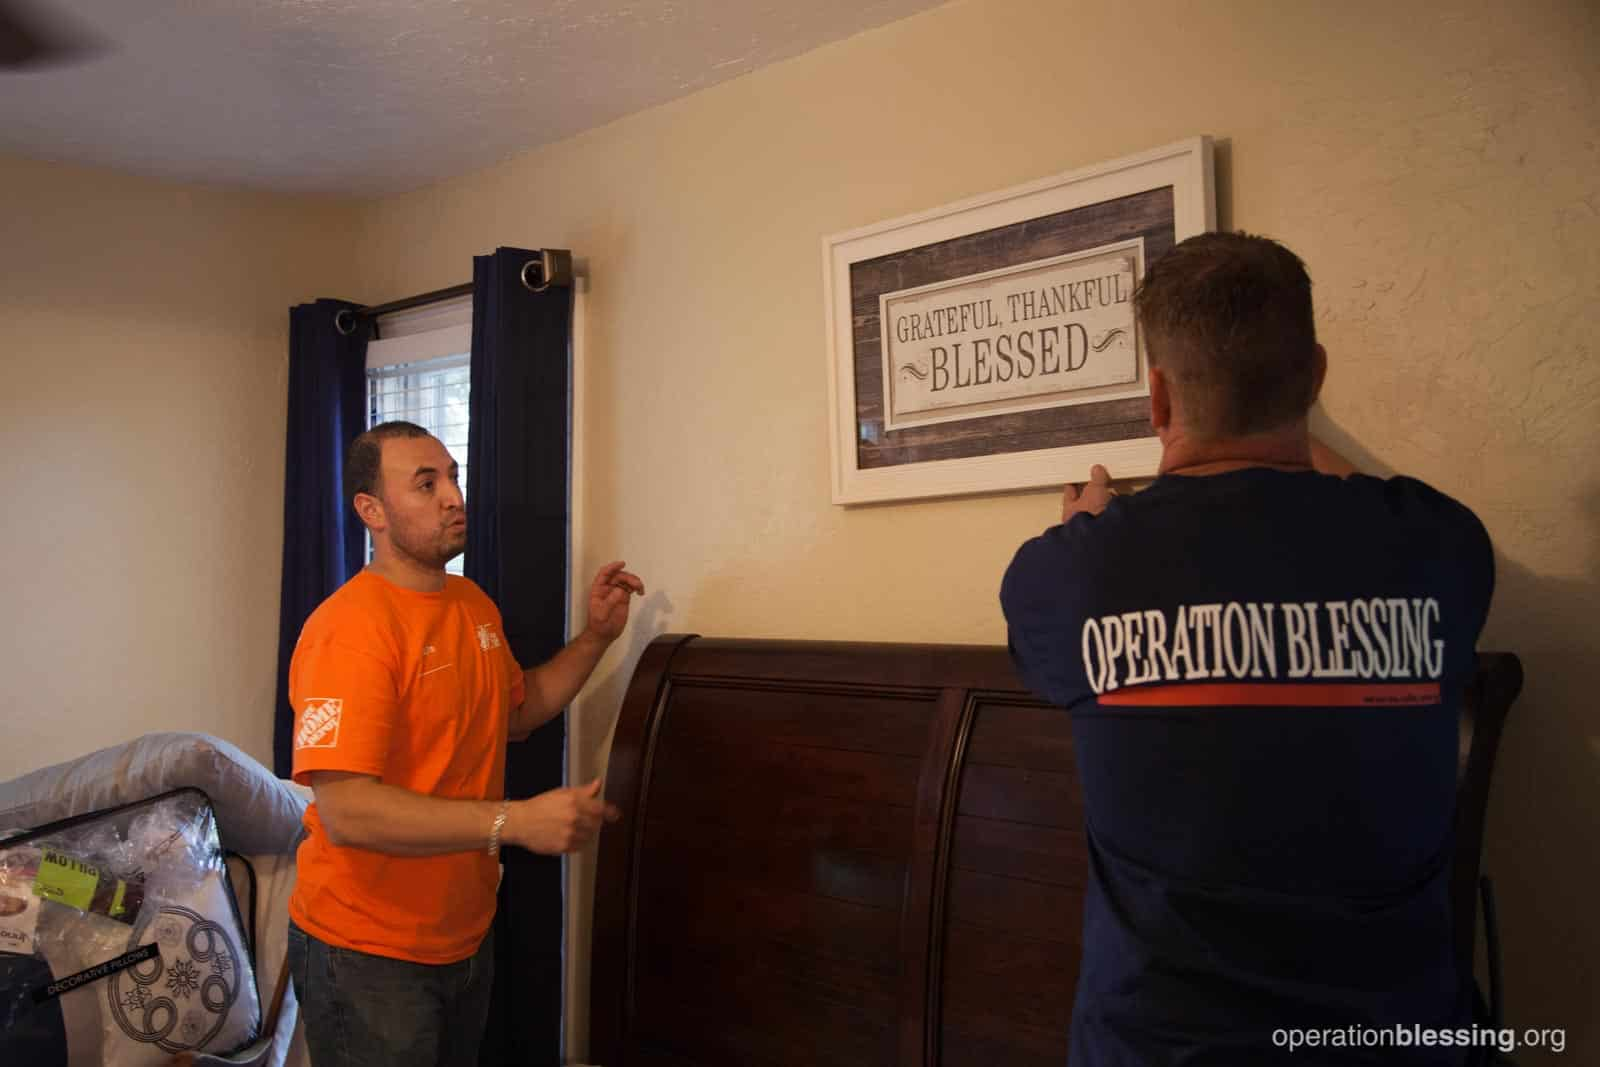 Workers from Operation Blessing and The Home Depot redecorate Priscilla's home.